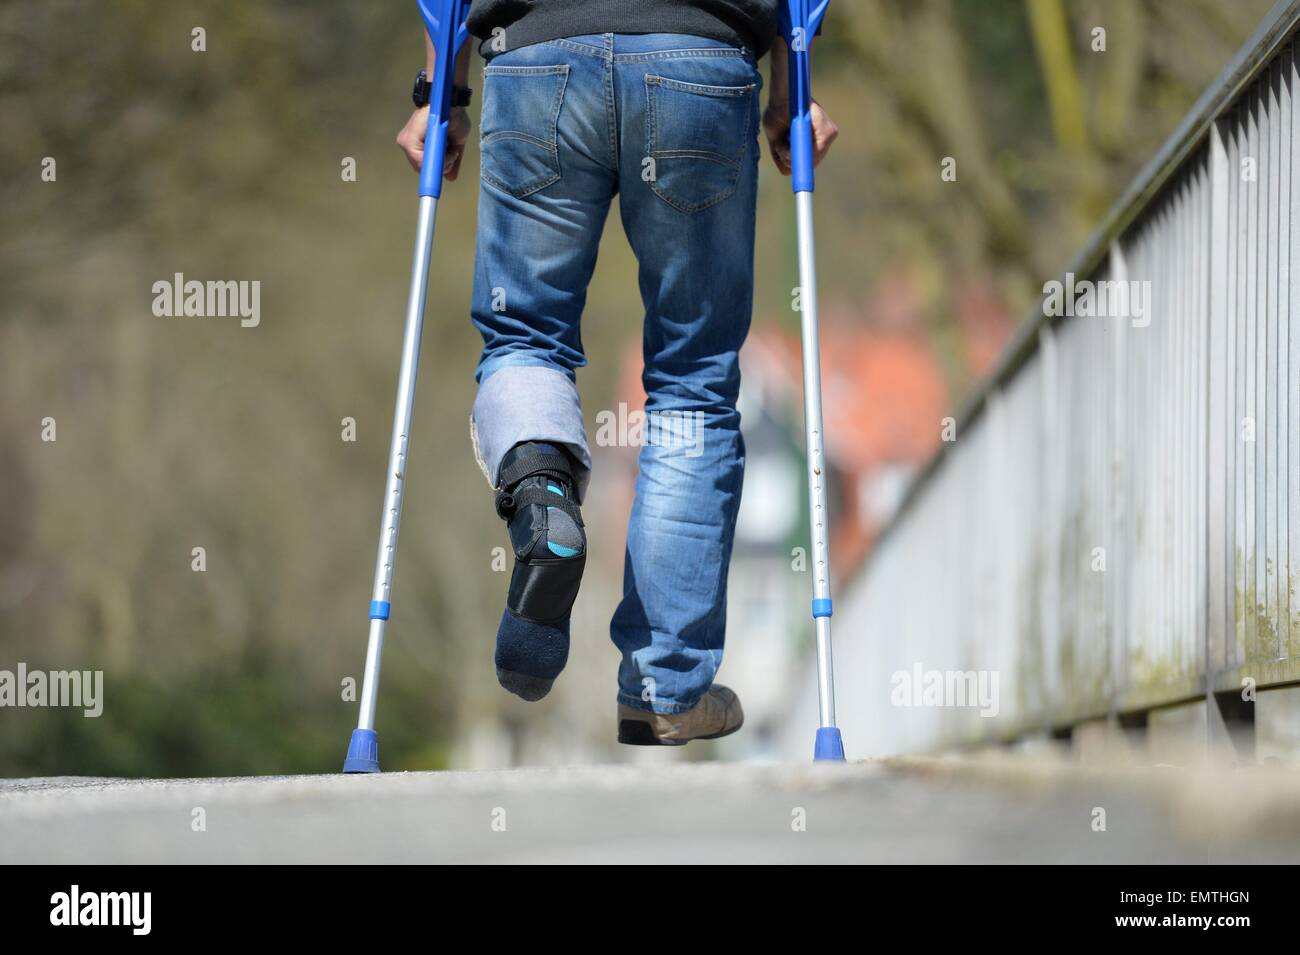 Man with crutches, Germany, city of Osterode, 15. April 2015. Photo: Frank May/picture alliance Stock Photo